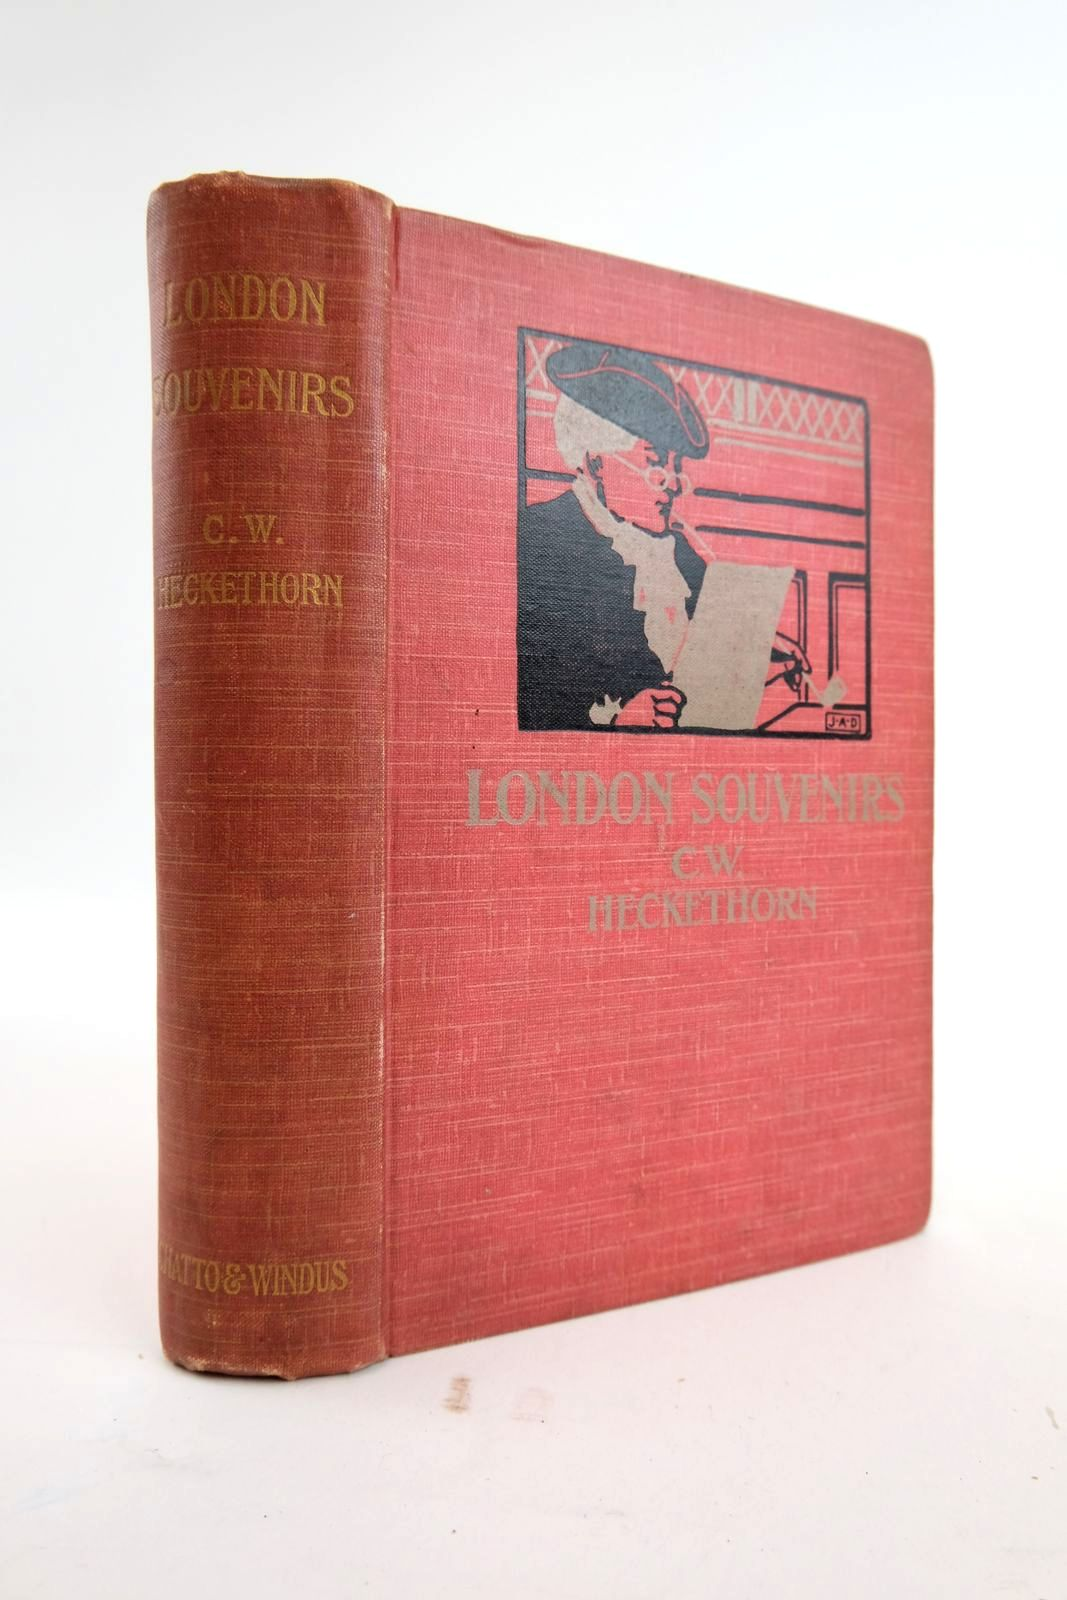 Photo of LONDON SOUVENIRS written by Heckethorn, Charles William published by Chatto & Windus (STOCK CODE: 2133857)  for sale by Stella & Rose's Books